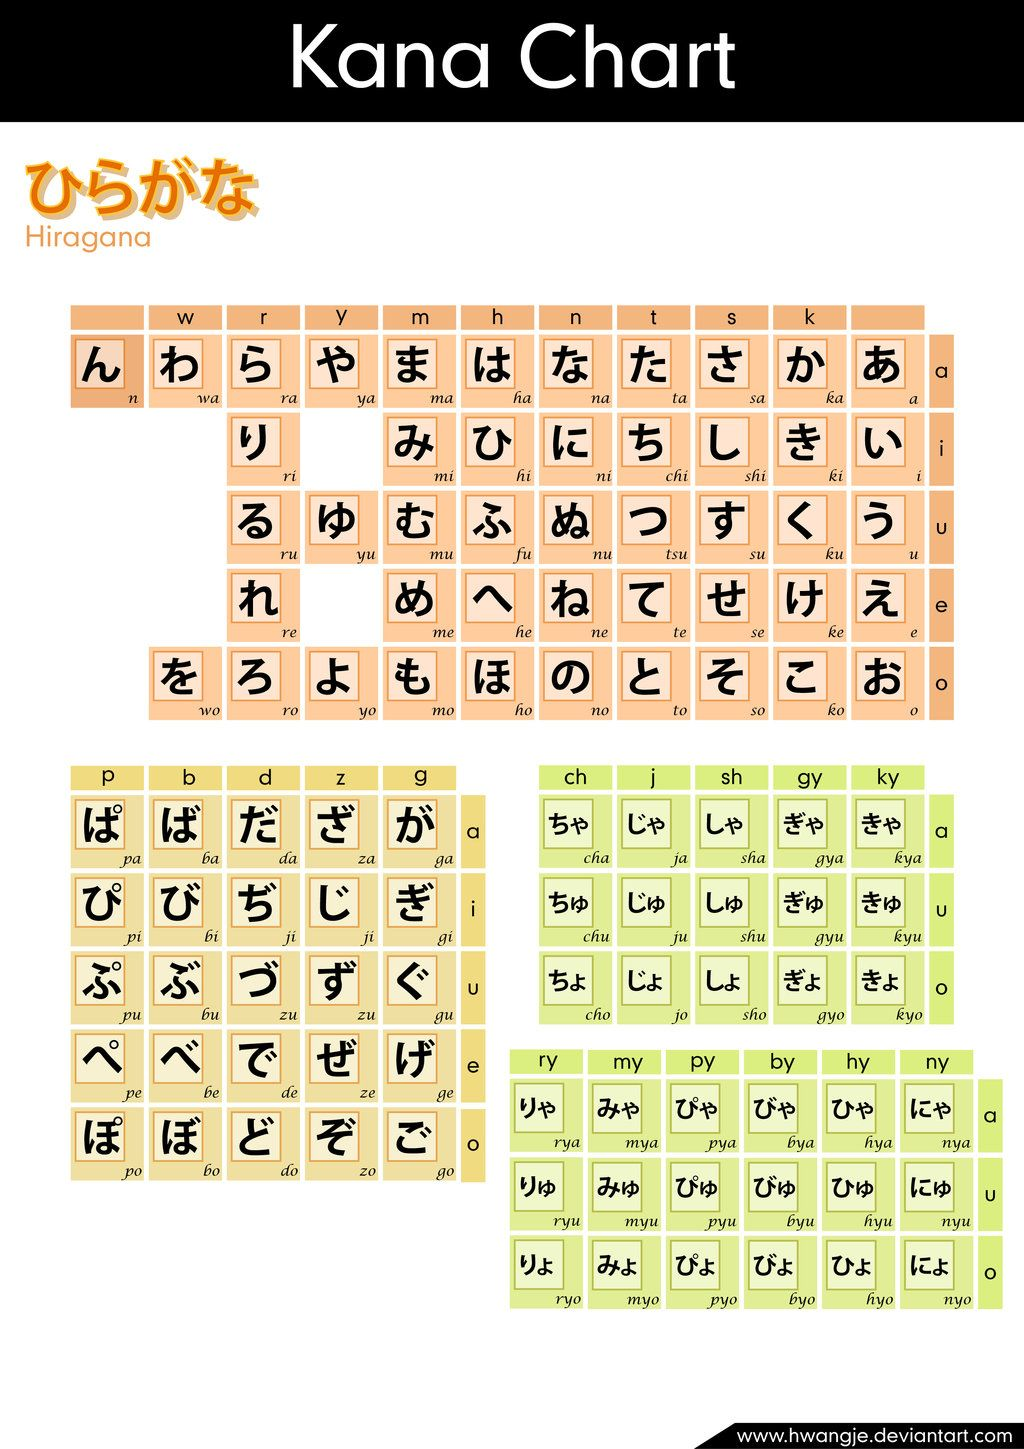 Hiragana Chart This Makes So Much More Sense Than The